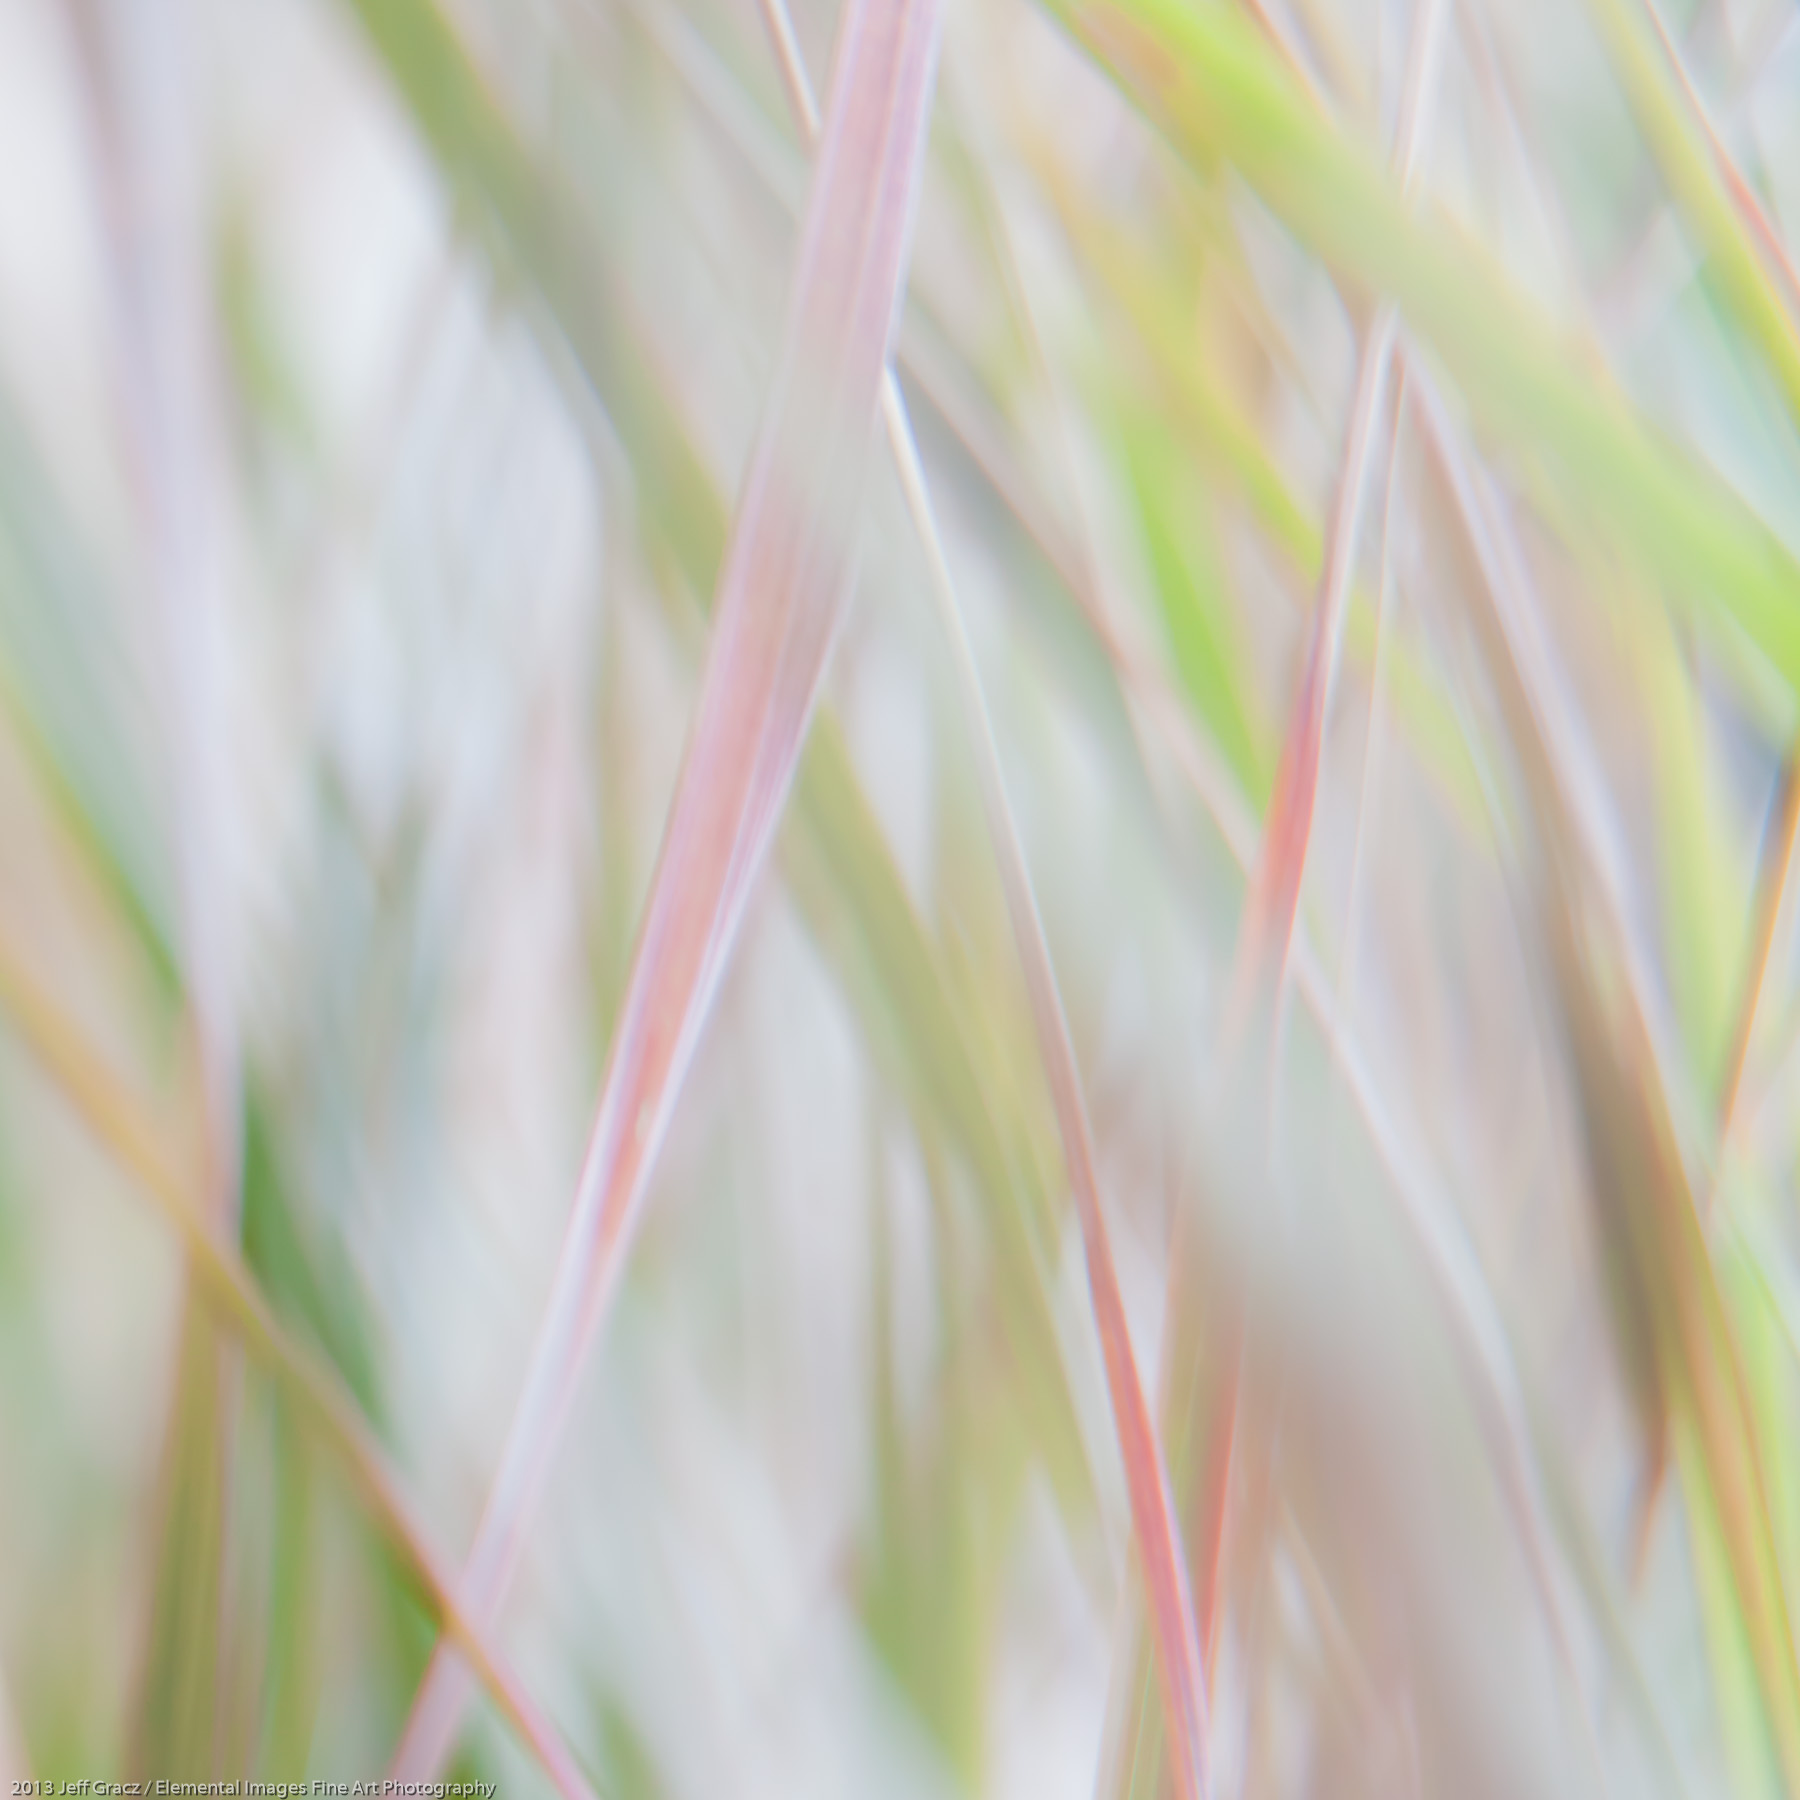 Grasses XLVIII | Portland | OR | USA - © 2013 Jeff Gracz / Elemental Images Fine Art Photography - All Rights Reserved Worldwide